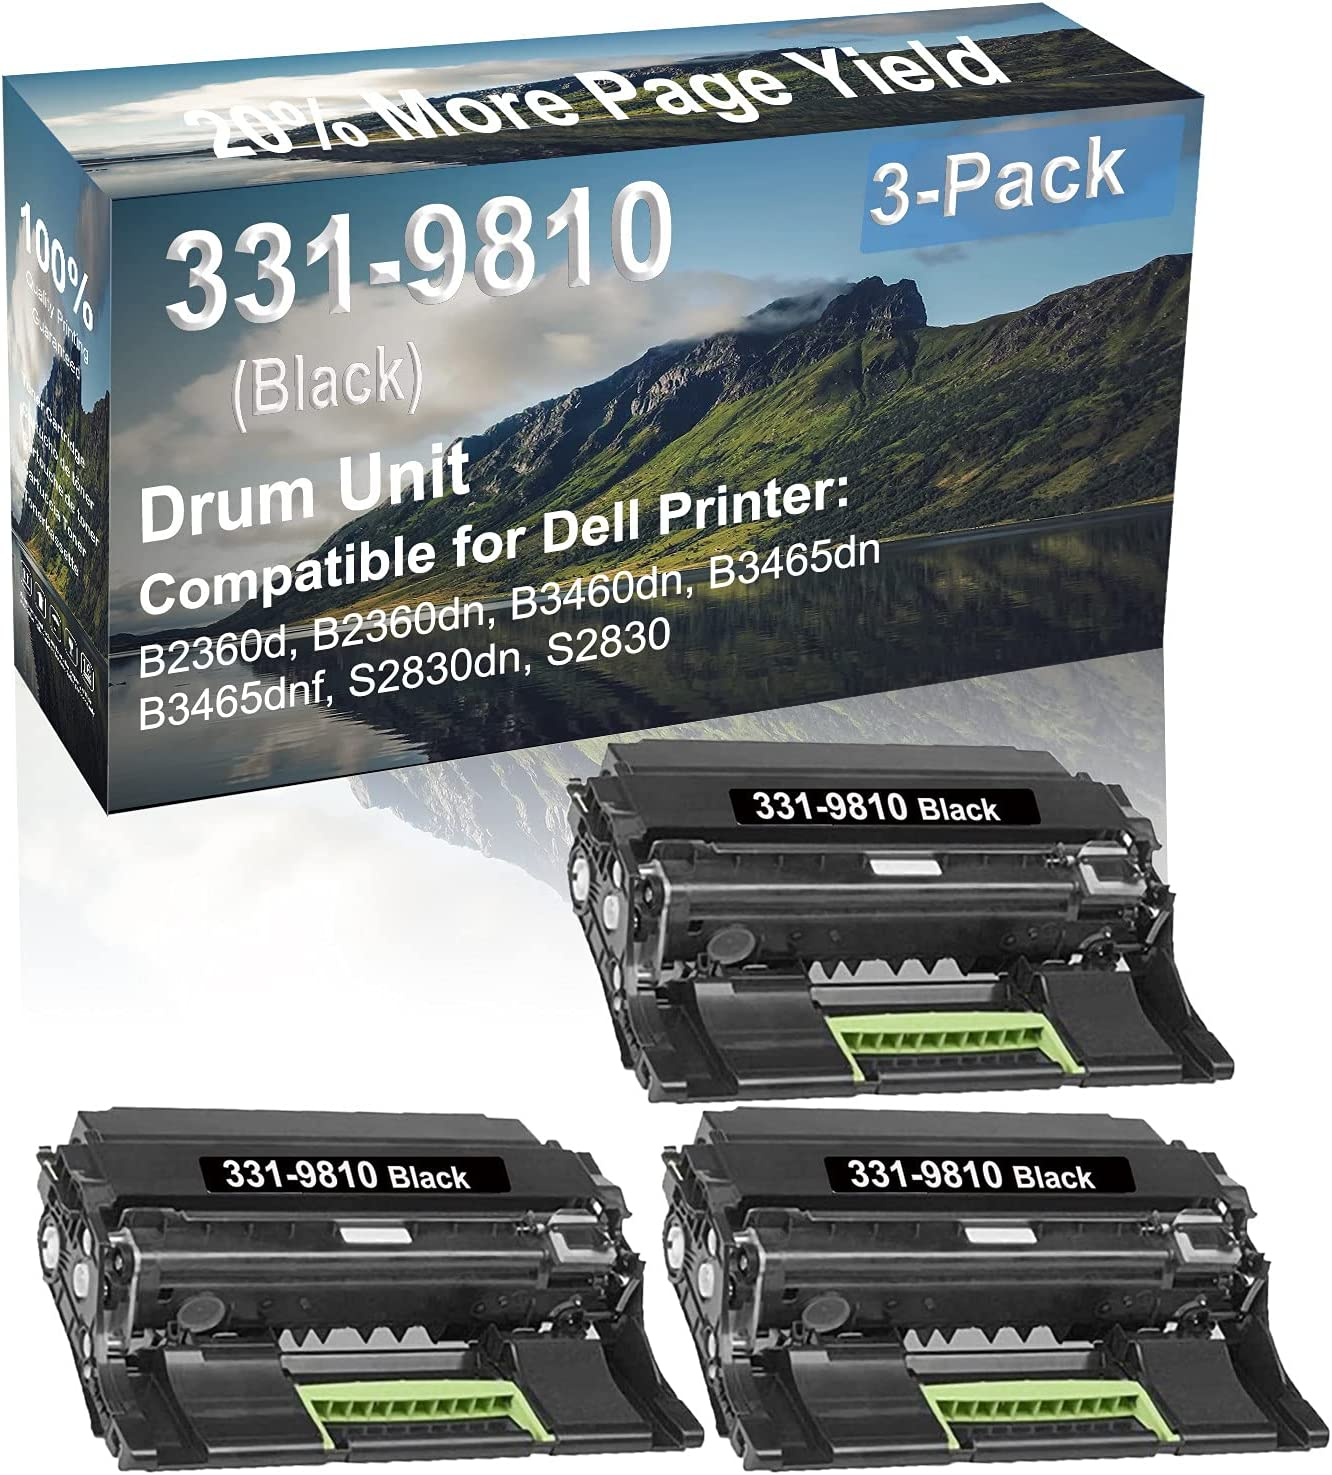 3-Pack Compatible Drum Unit (Black) Replacement for Dell 331-9810 Drum Kit use for Dell B3465dnf, S2830dn, S2830 Printer